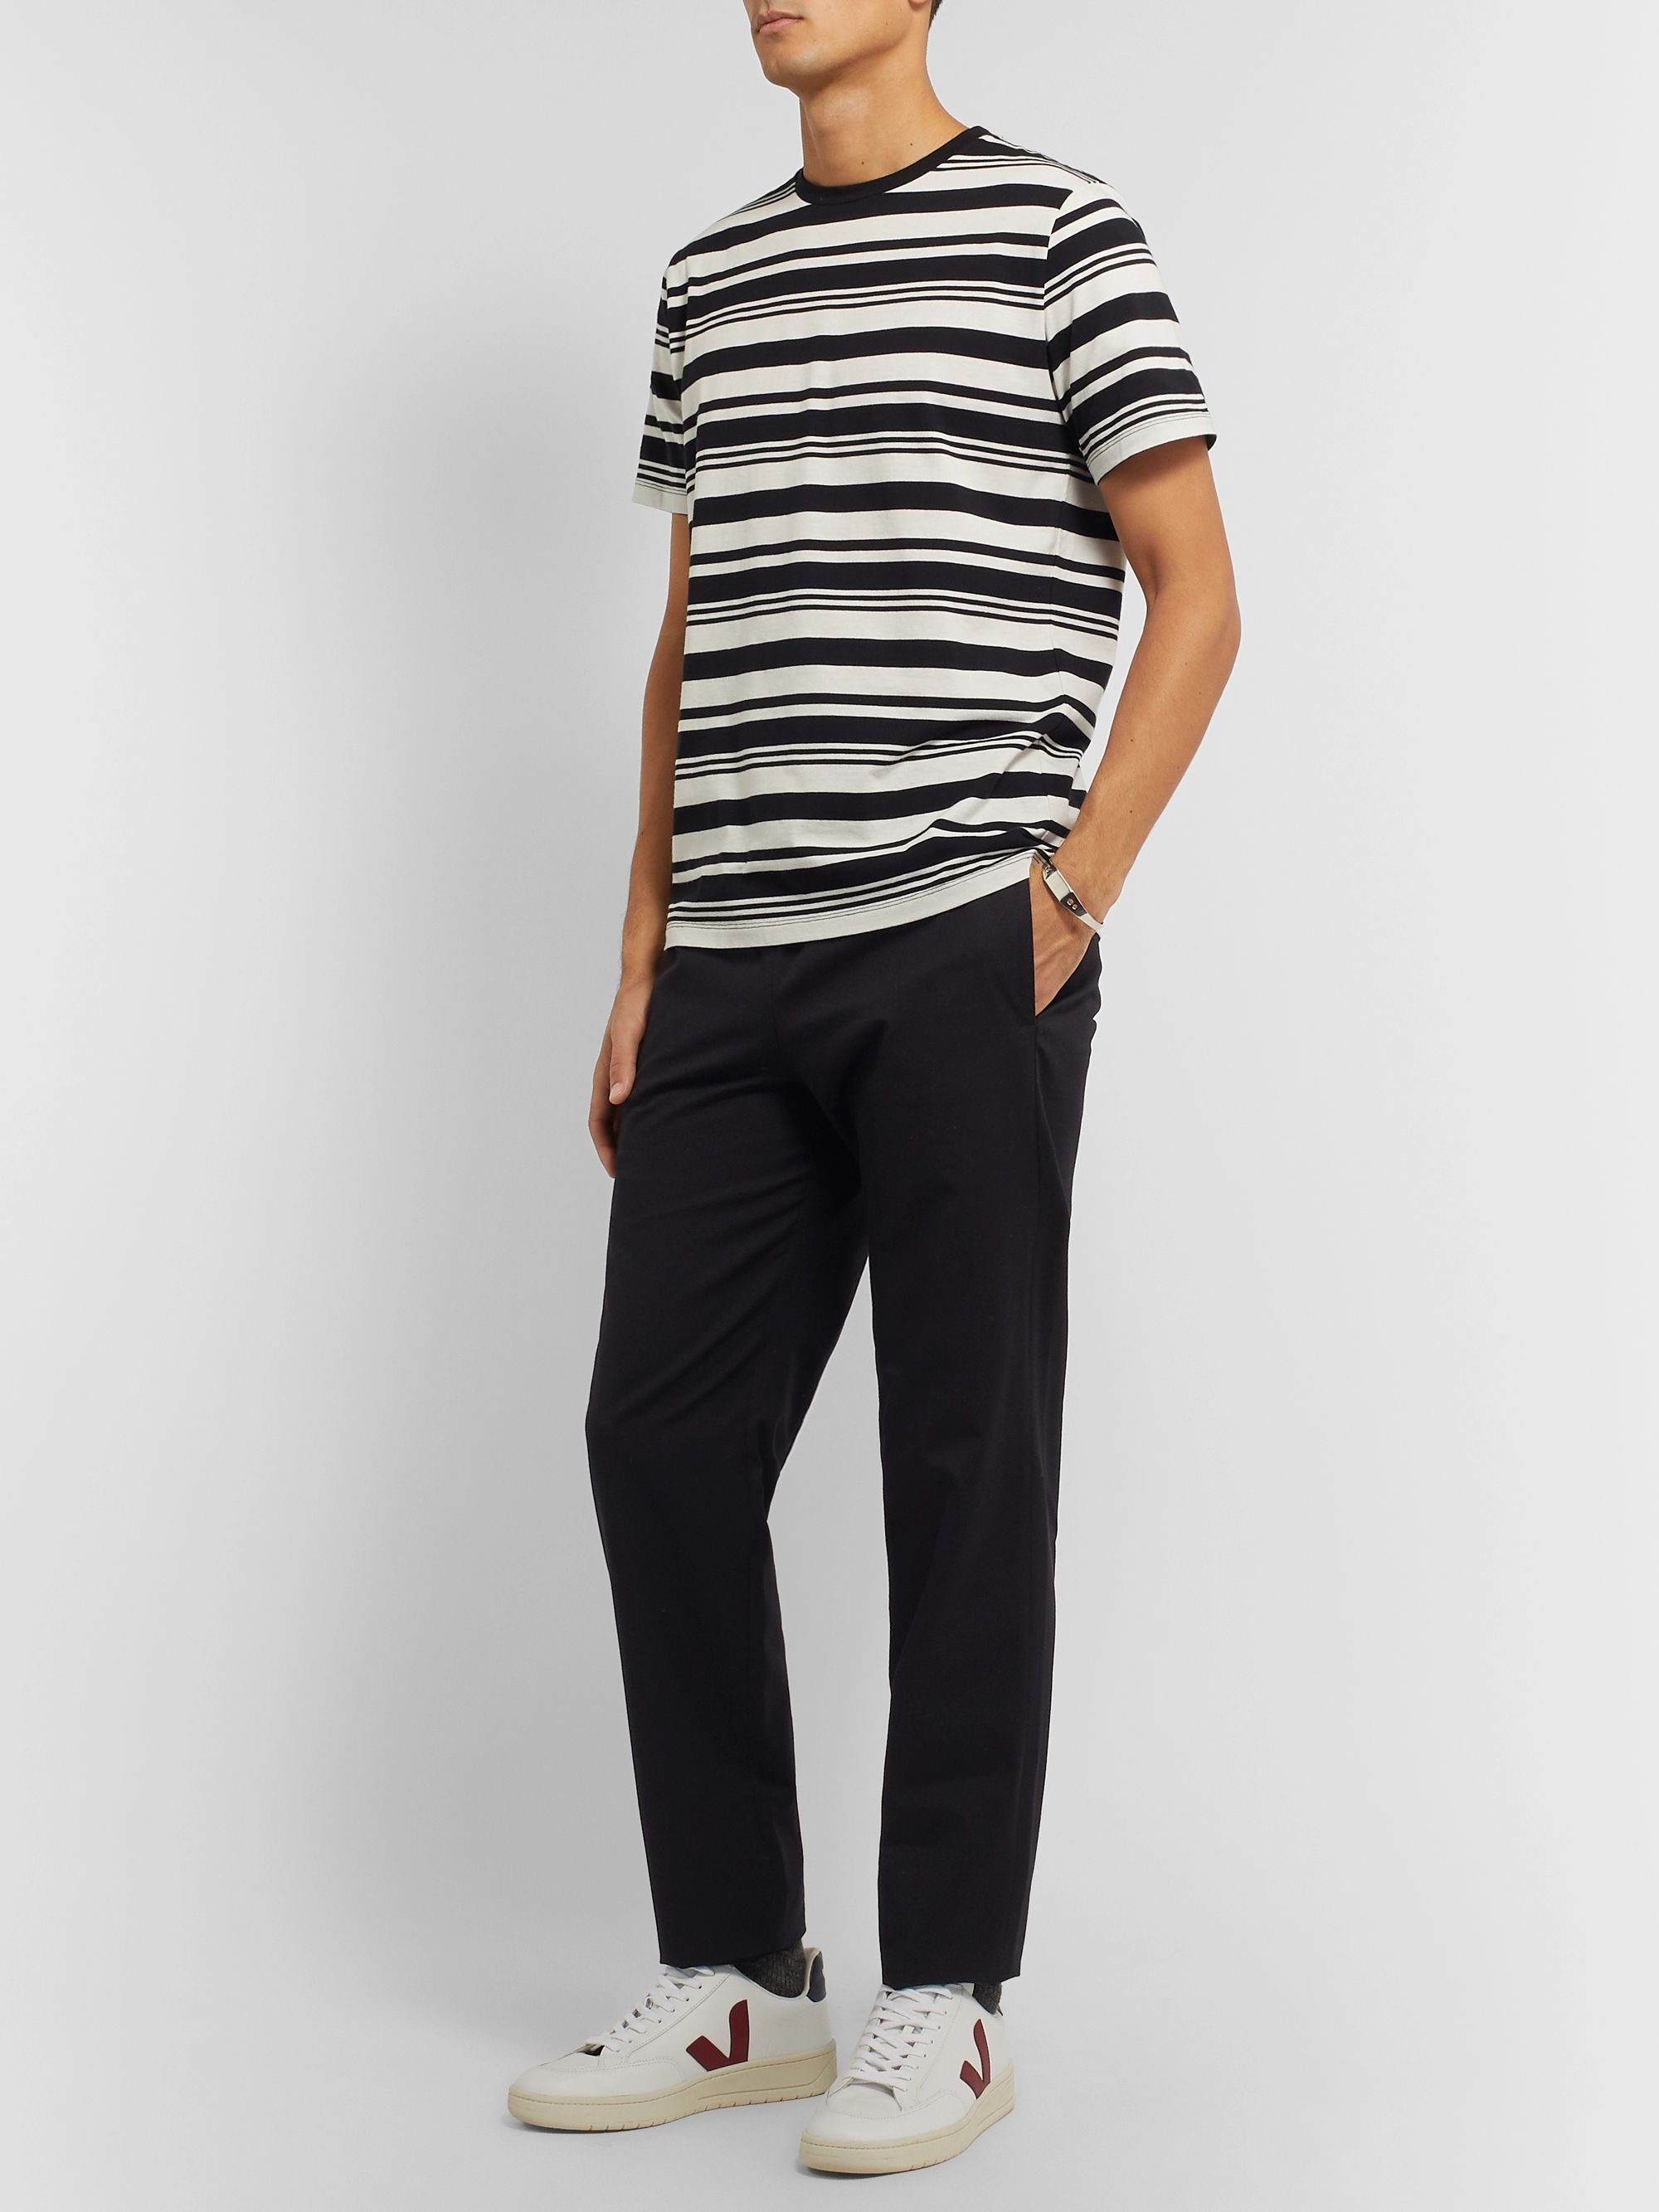 A.P.C. Yves Striped Cotton-Jersey T-Shirt